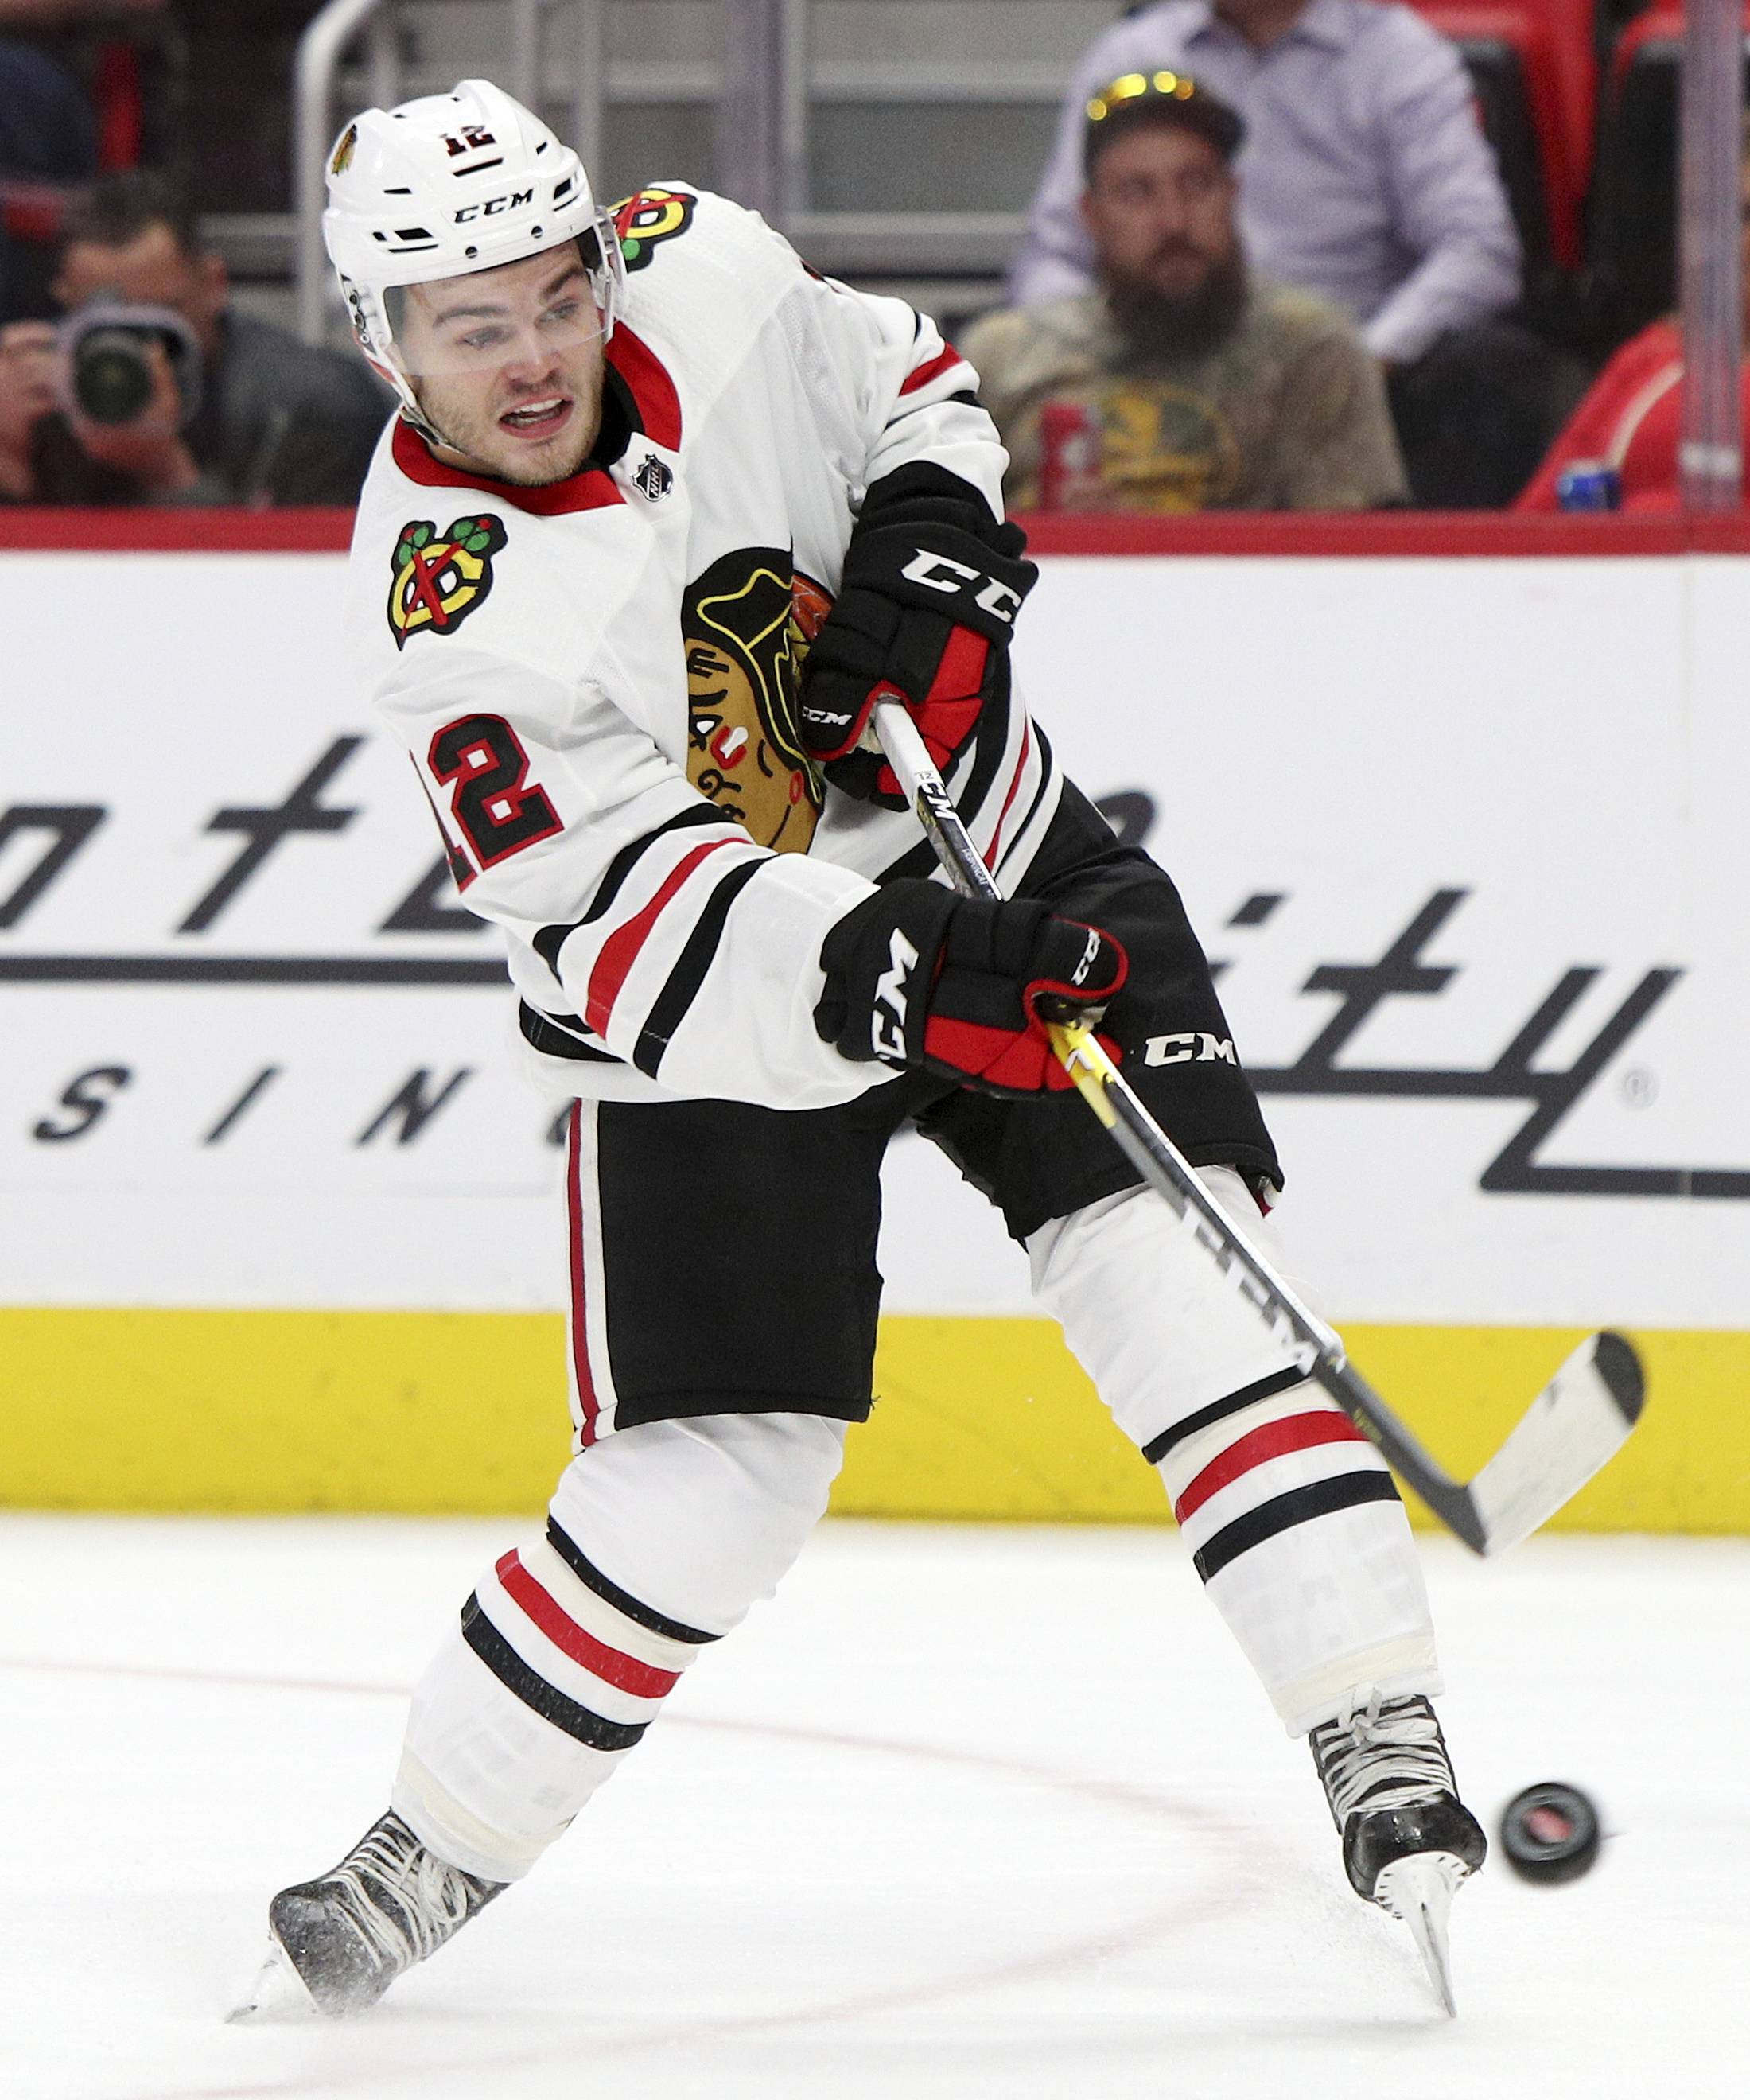 Chicago Blackhawks forward Alex DeBrincat (12) shoots the puck during the first period of a preseason NHL hockey game against the Detroit Red Wings, Thursday, Sept. 20, 2018 in Detroit. (Mike Mulholland/The Grand Rapids Press via AP)